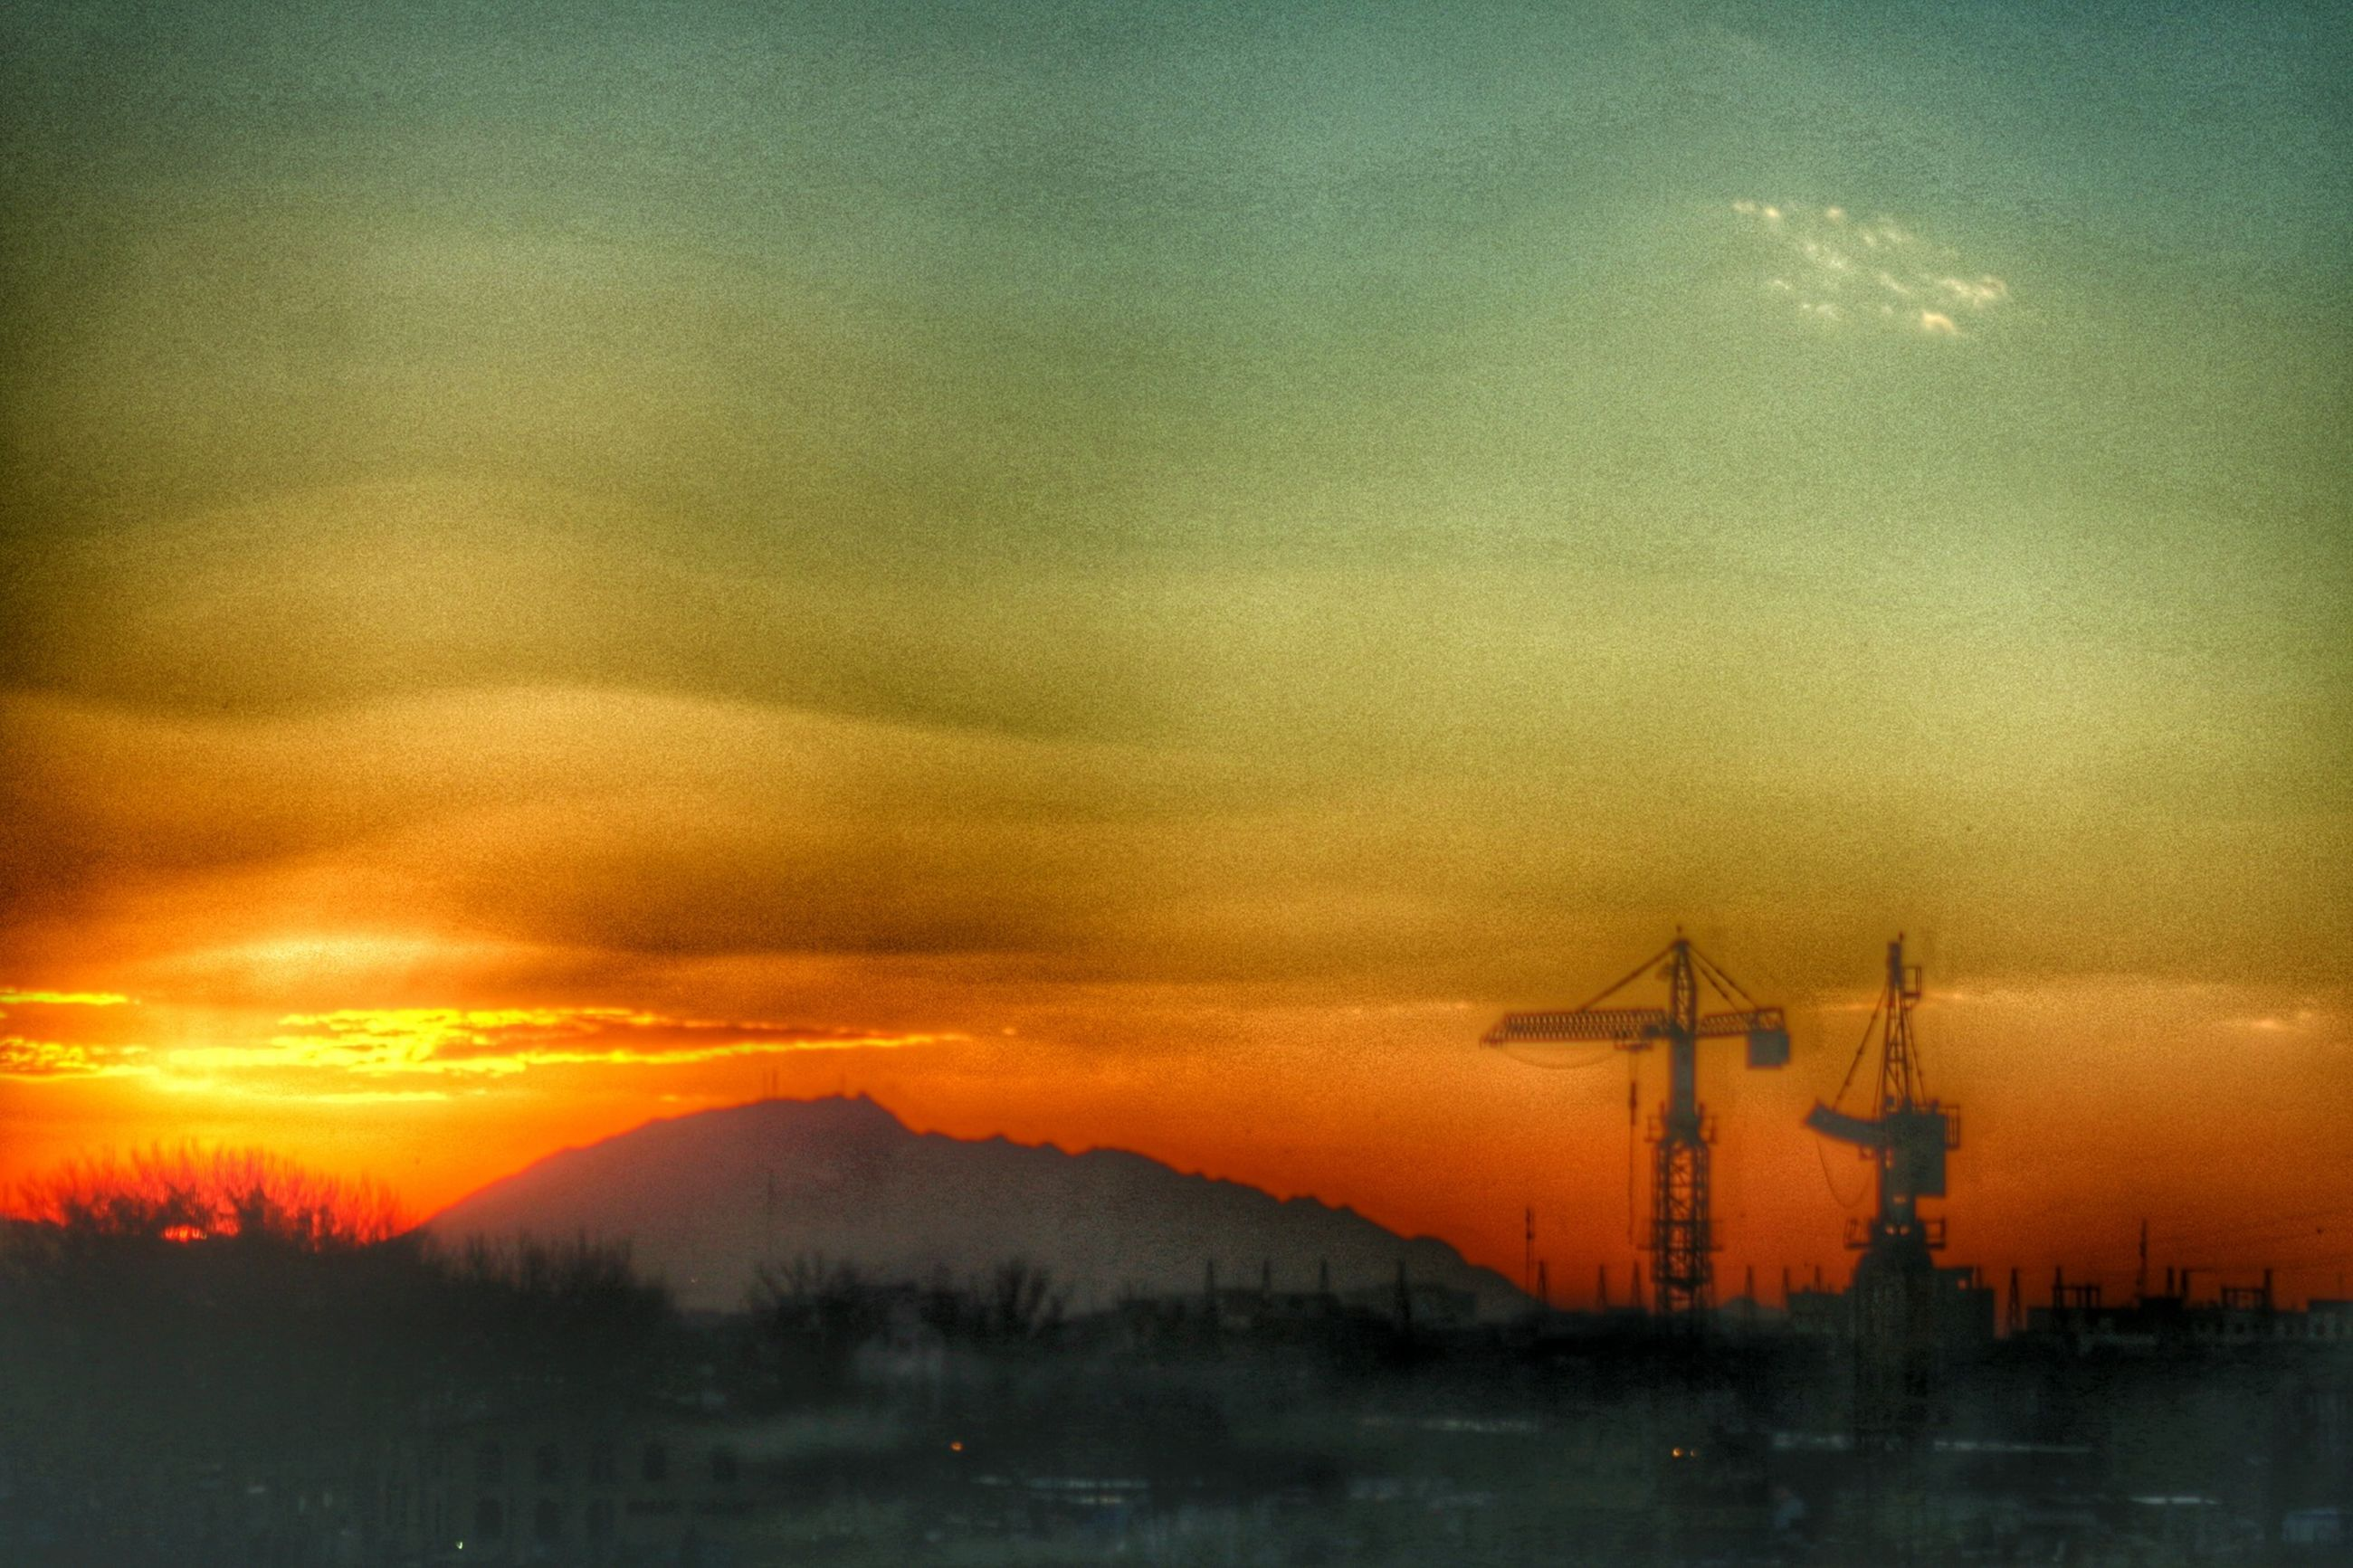 sunset, orange color, fuel and power generation, alternative energy, silhouette, wind turbine, scenics, wind power, sky, environmental conservation, renewable energy, beauty in nature, windmill, tranquil scene, nature, tranquility, idyllic, water, crane - construction machinery, landscape